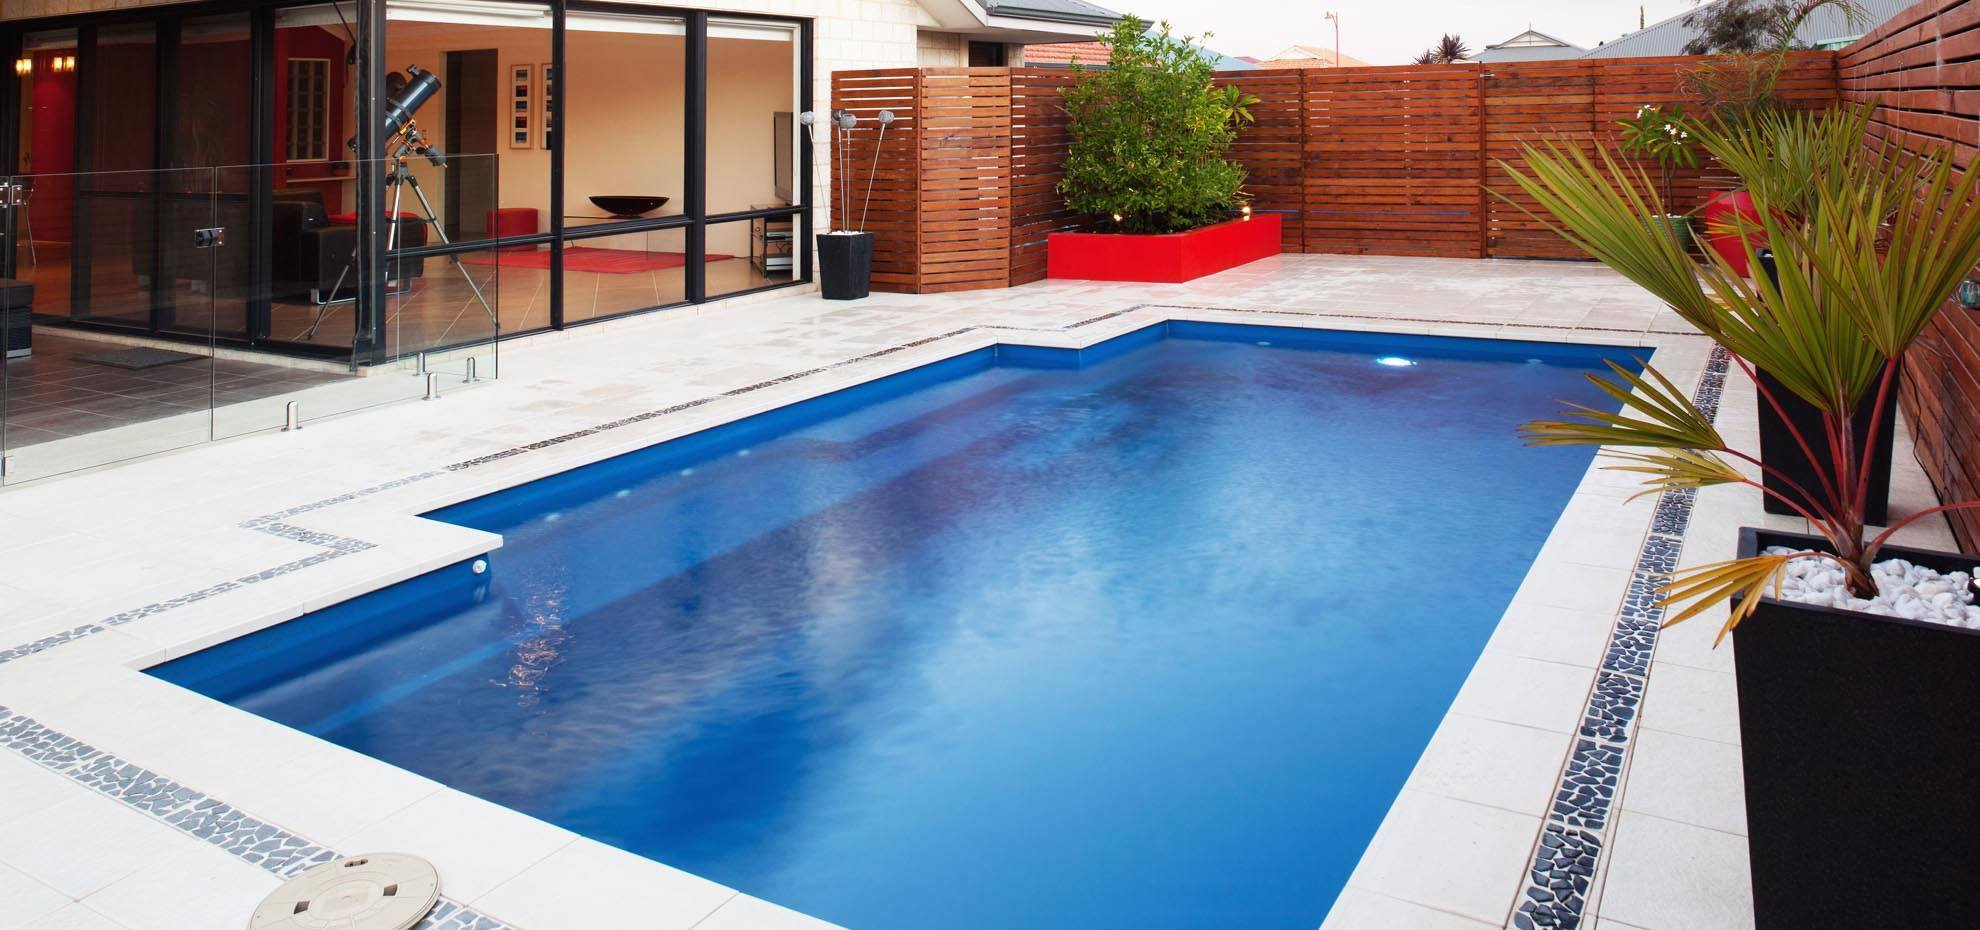 Elegance fibreglass pool with coping by Leisure Pools